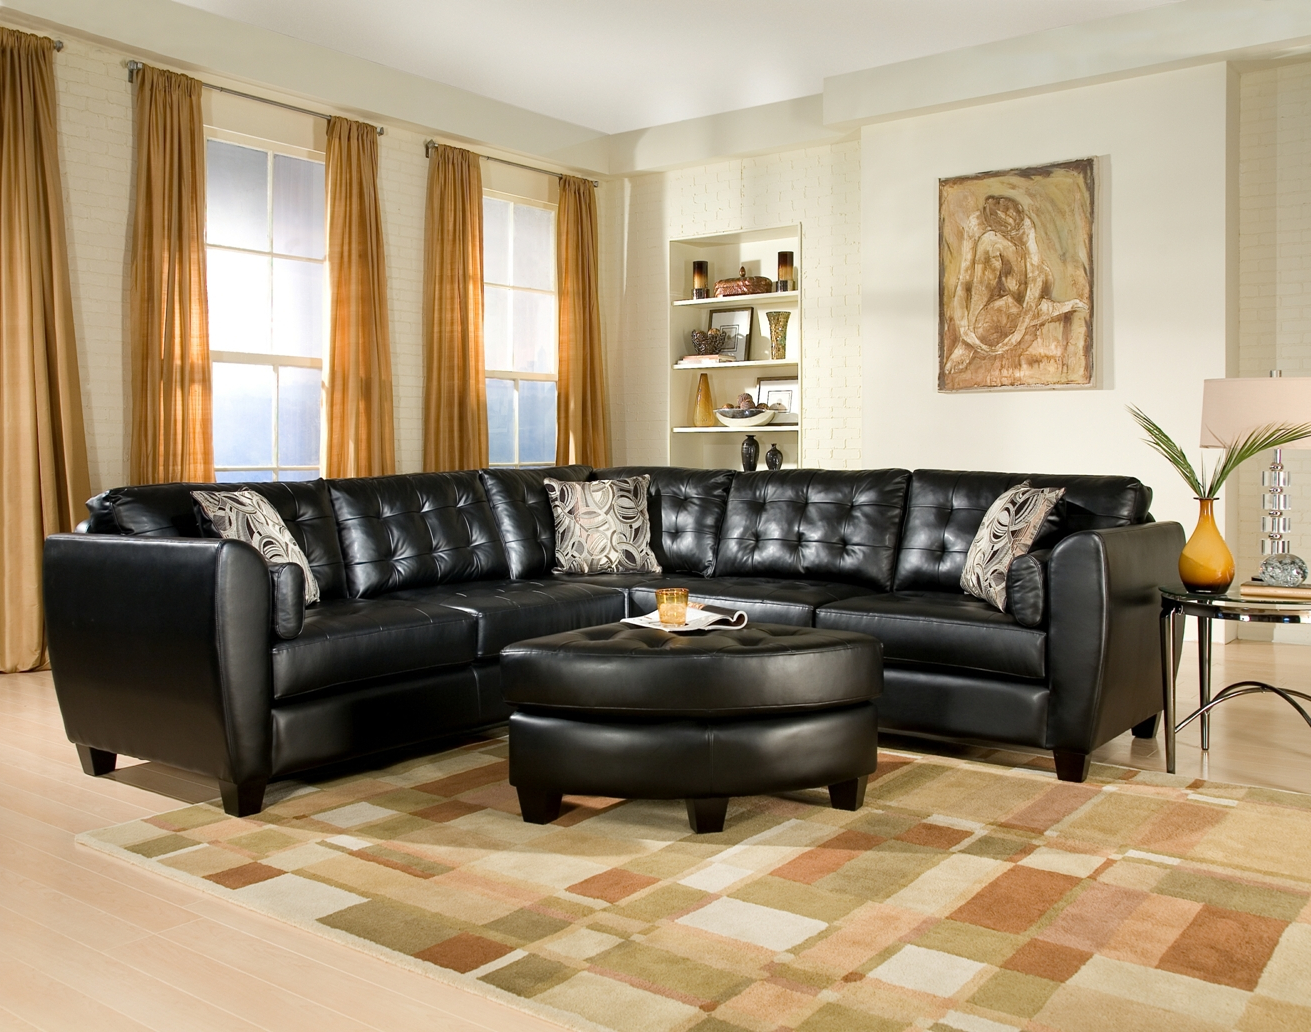 Living room ideas with sectionals sofa for small living for A living room design